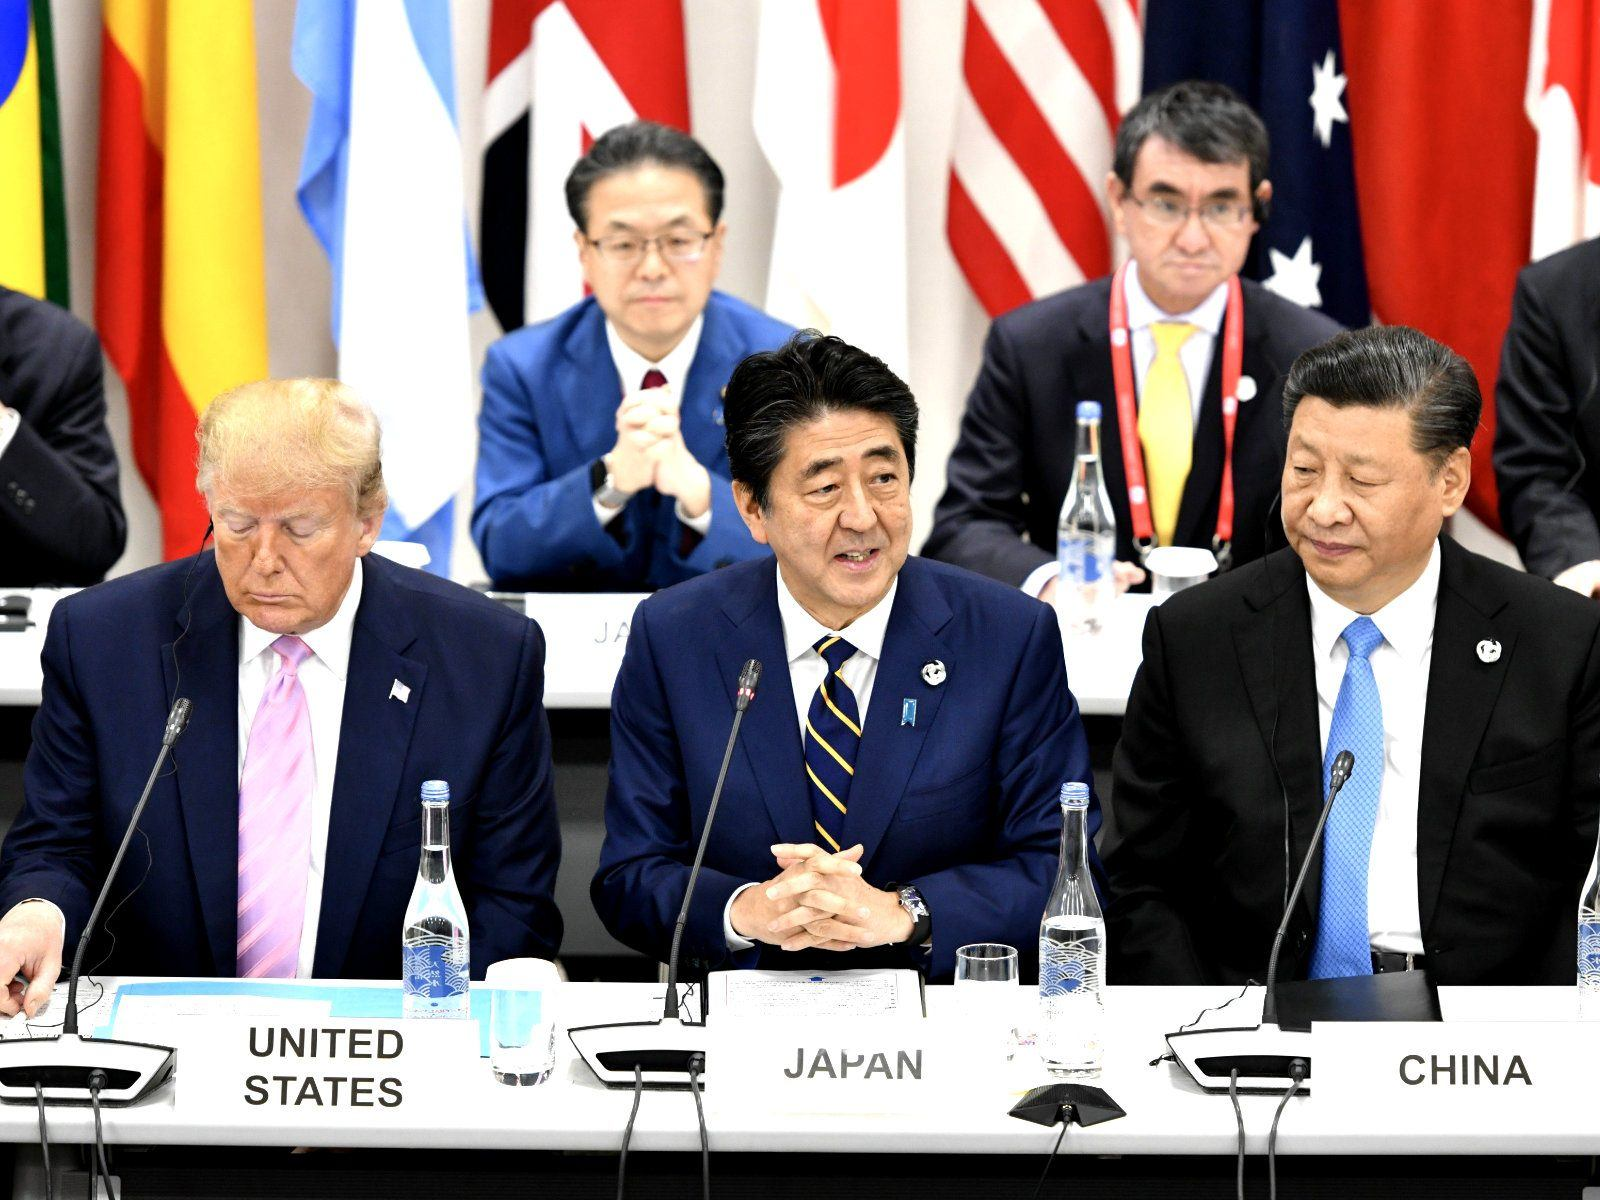 G20 Osaka: 5 Things you need to know